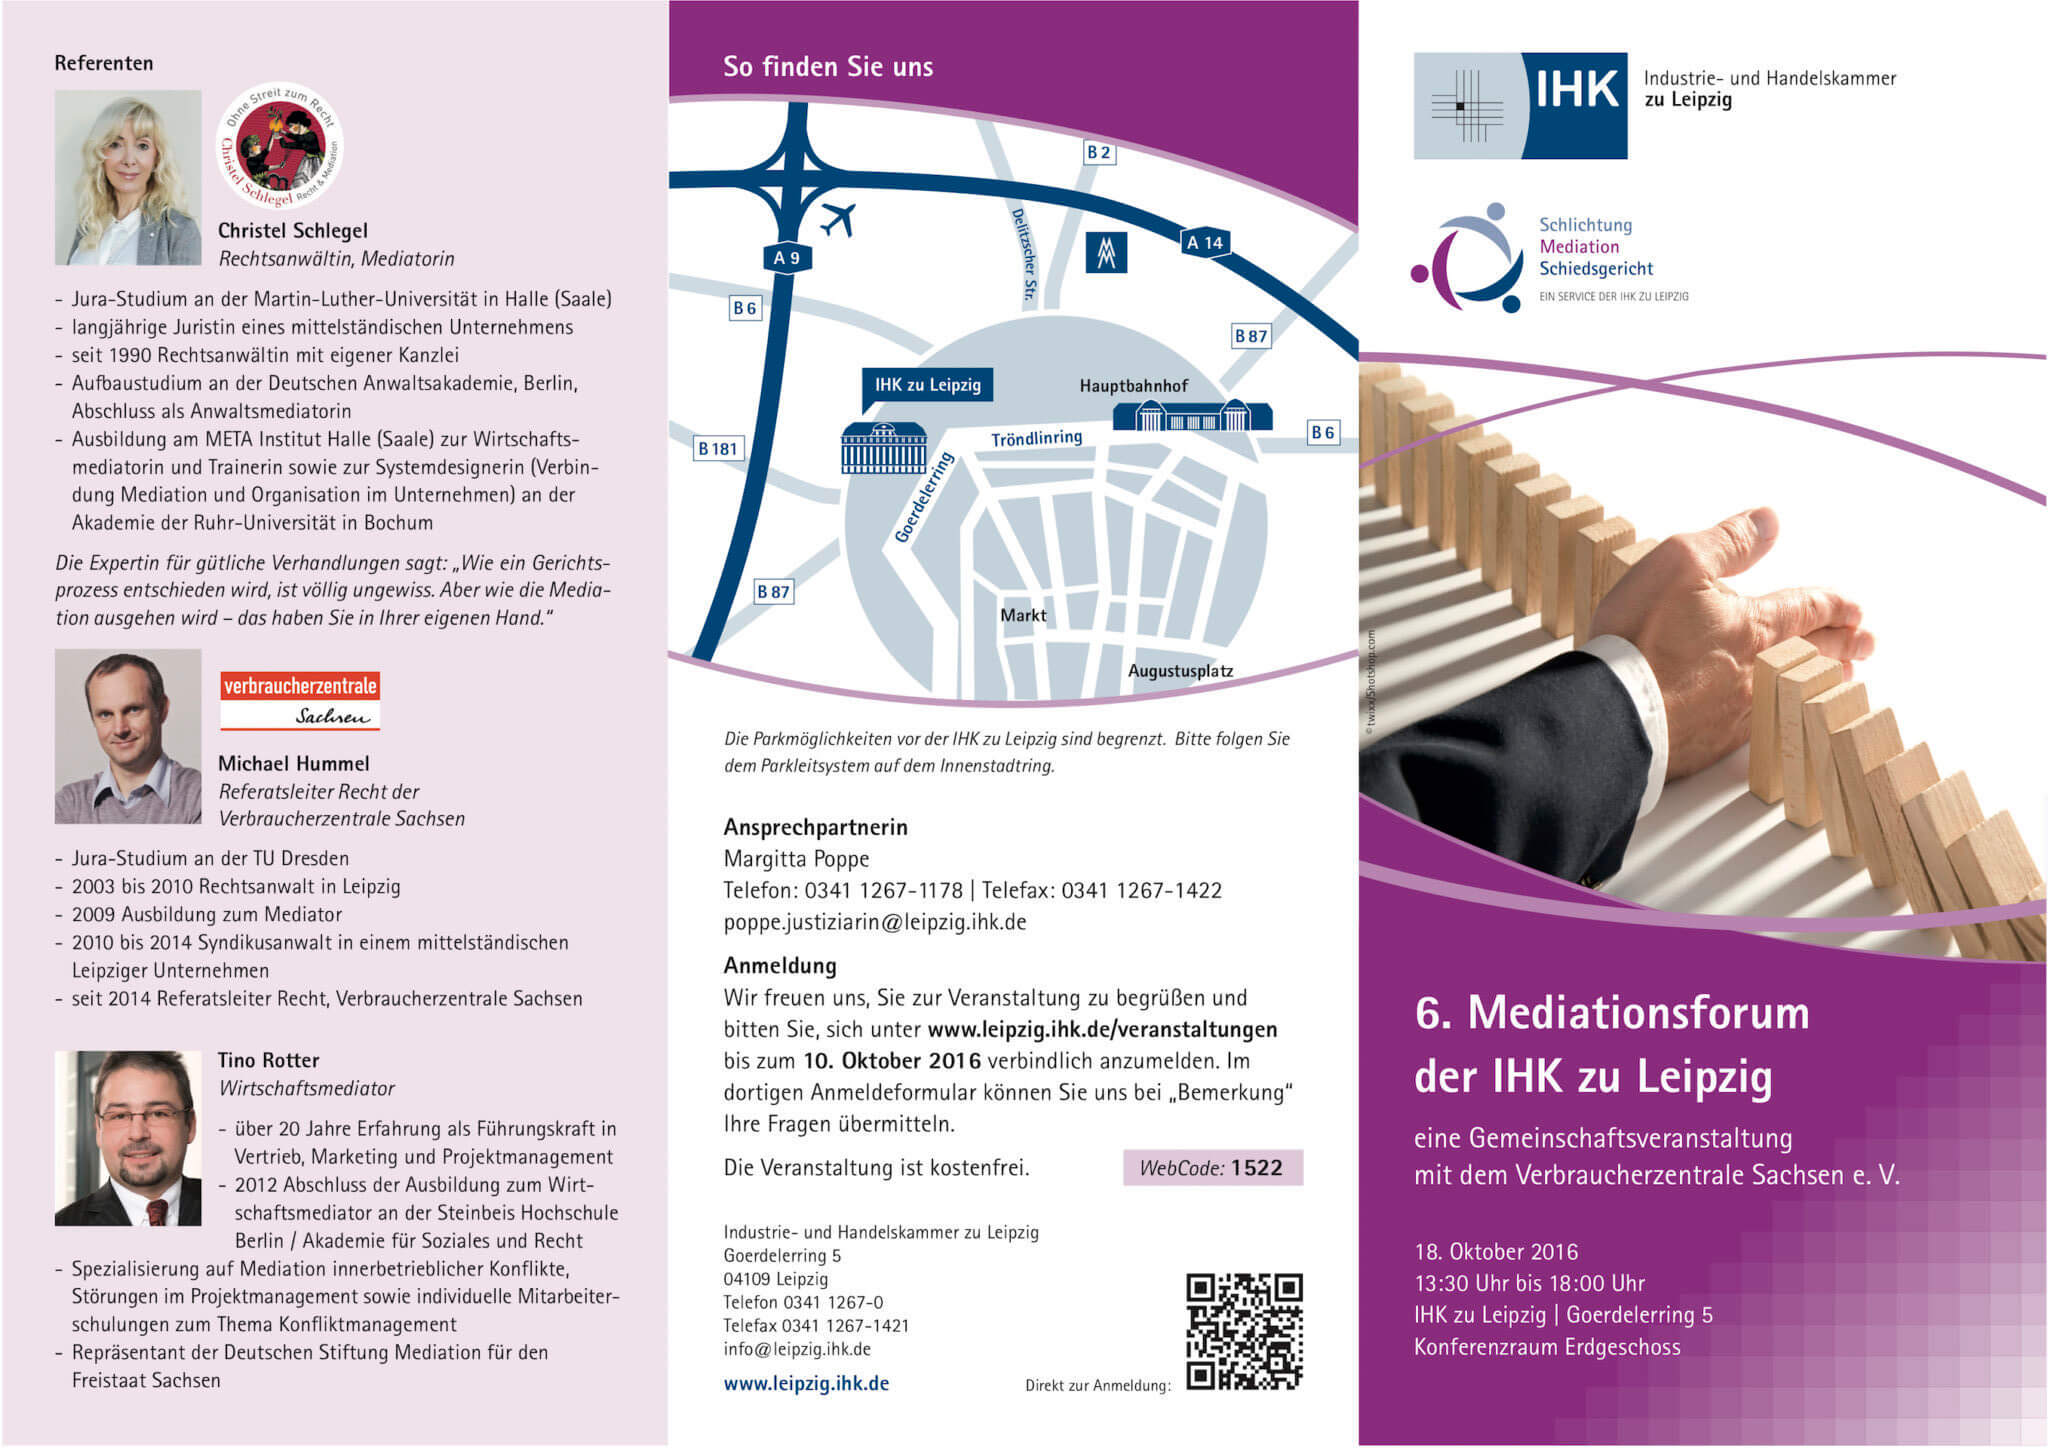 Christel Schlegel IHK Mediationsforum 2018 Flyer